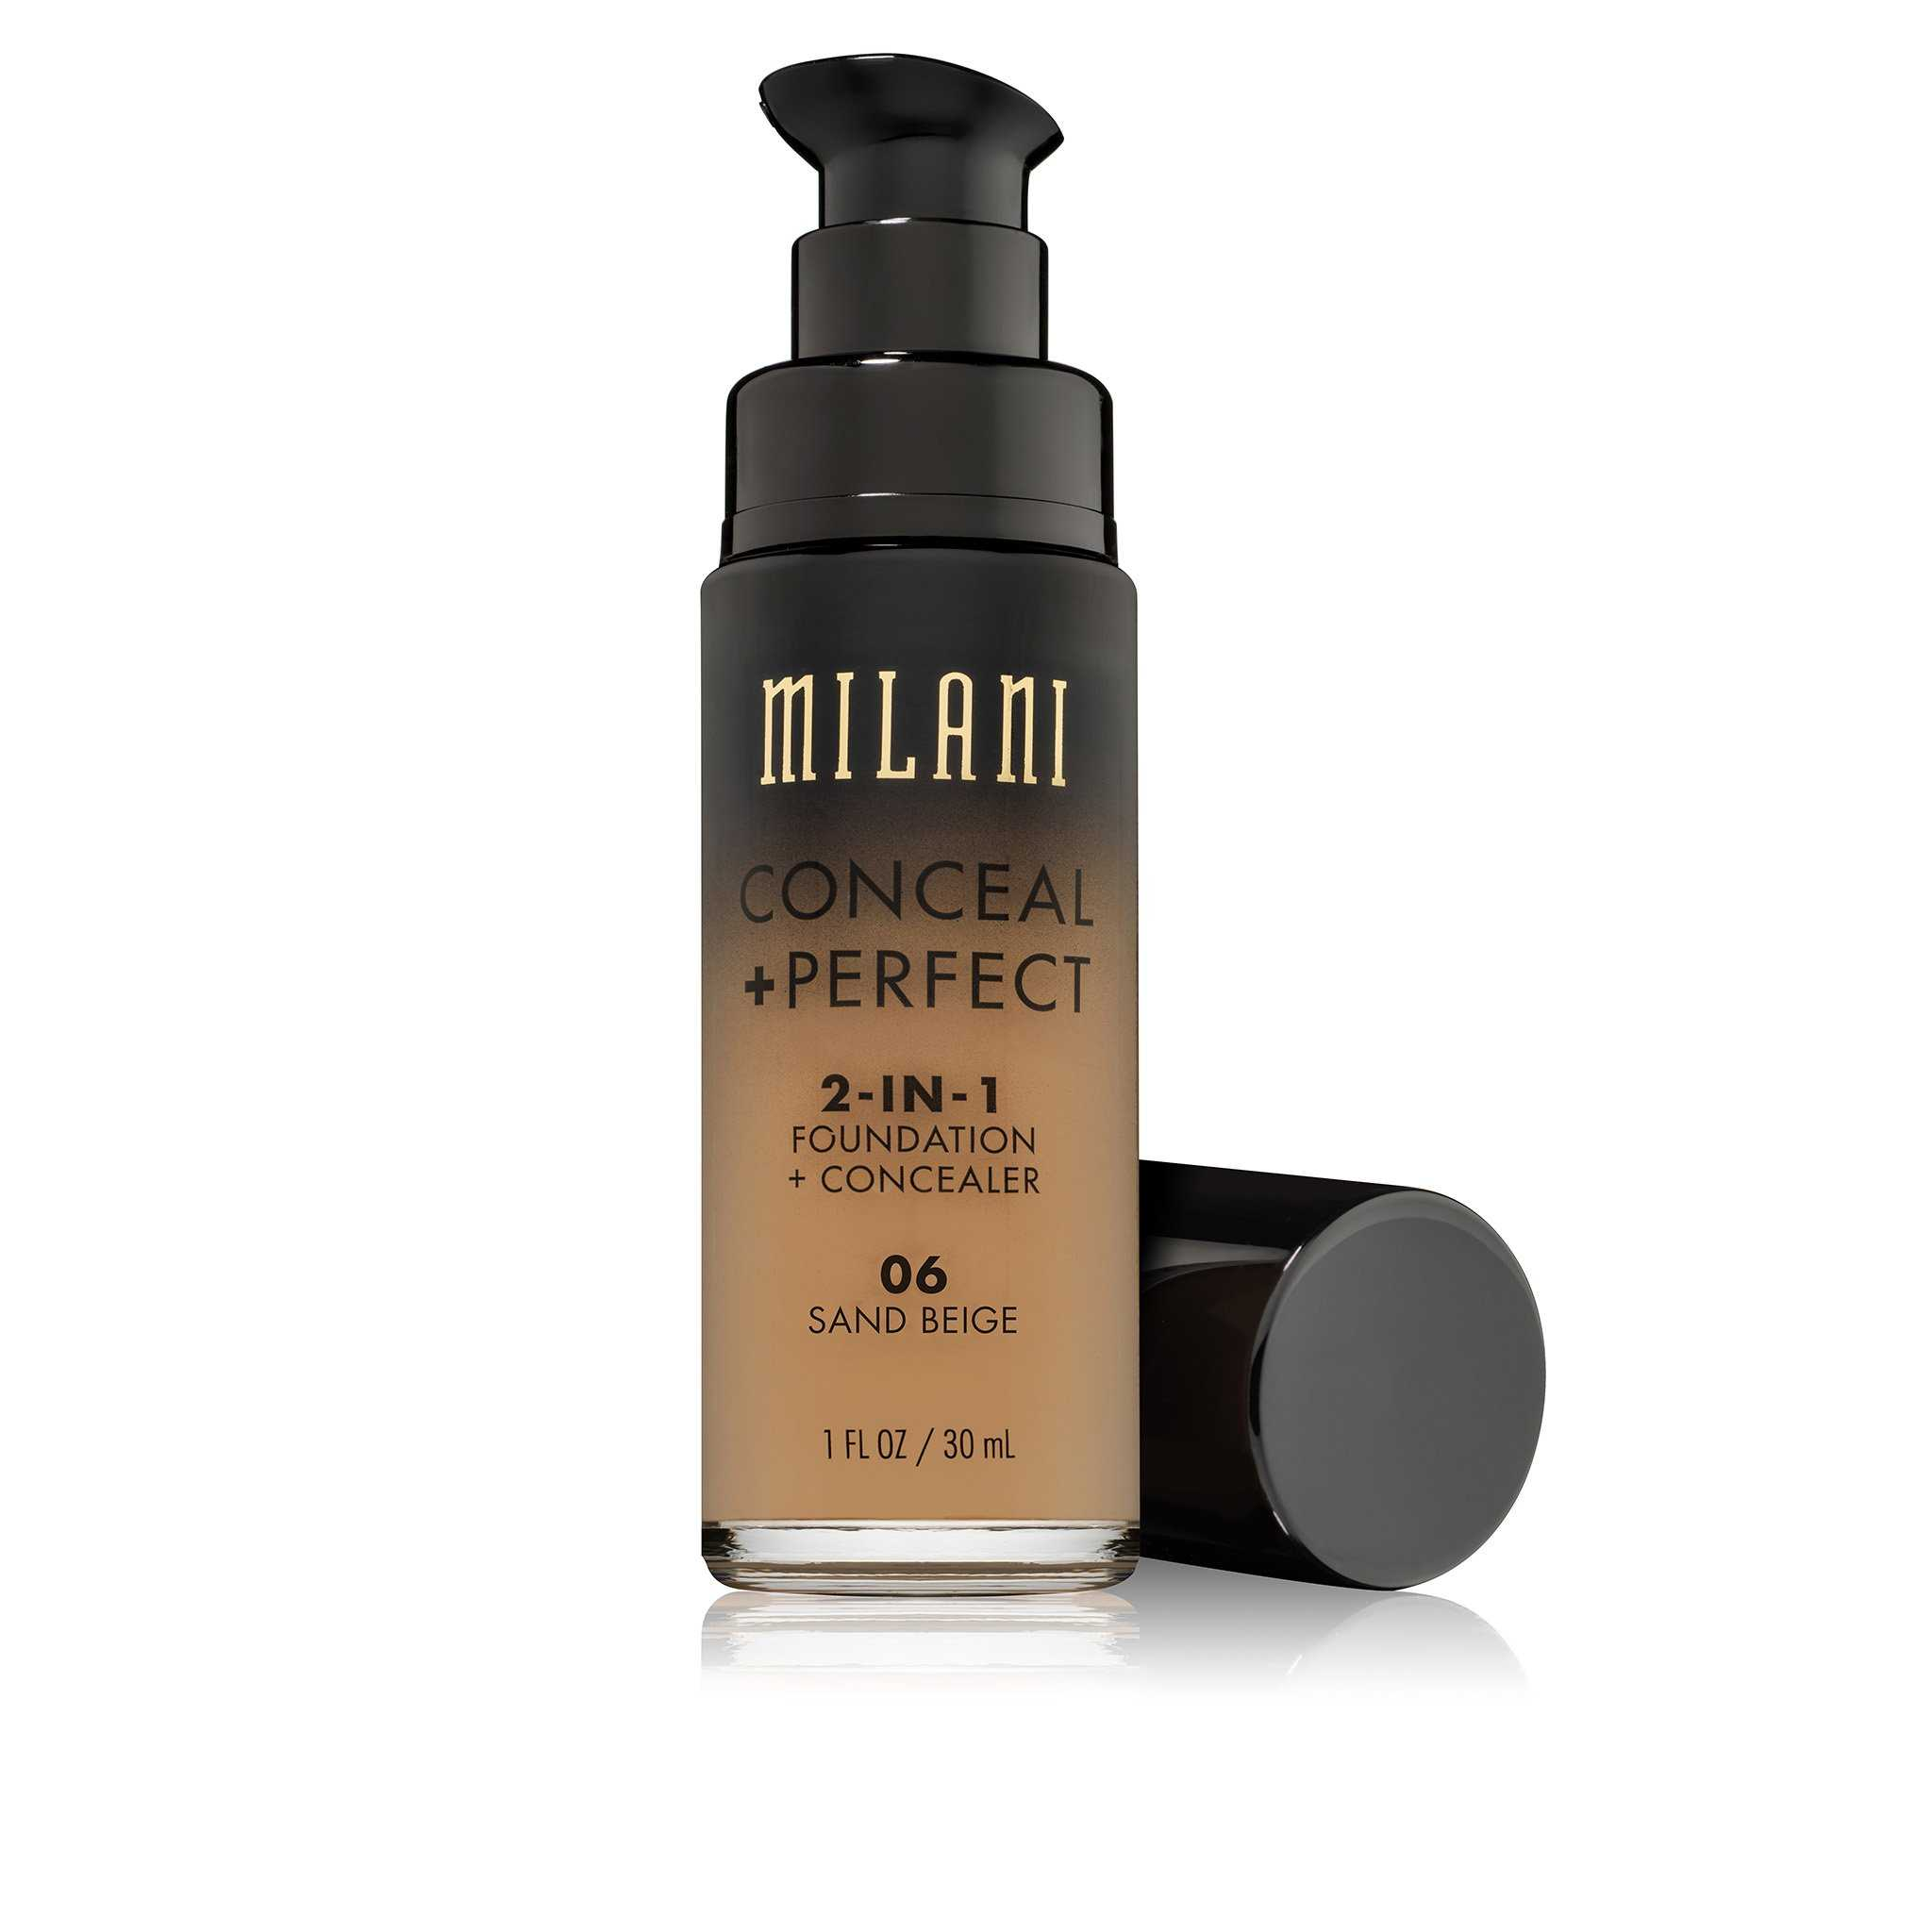 Milani - Conceal & Perfect 2-IN-1 Liquid Make up - 06 Sand Beige Medium with Warm Yellow Undertone